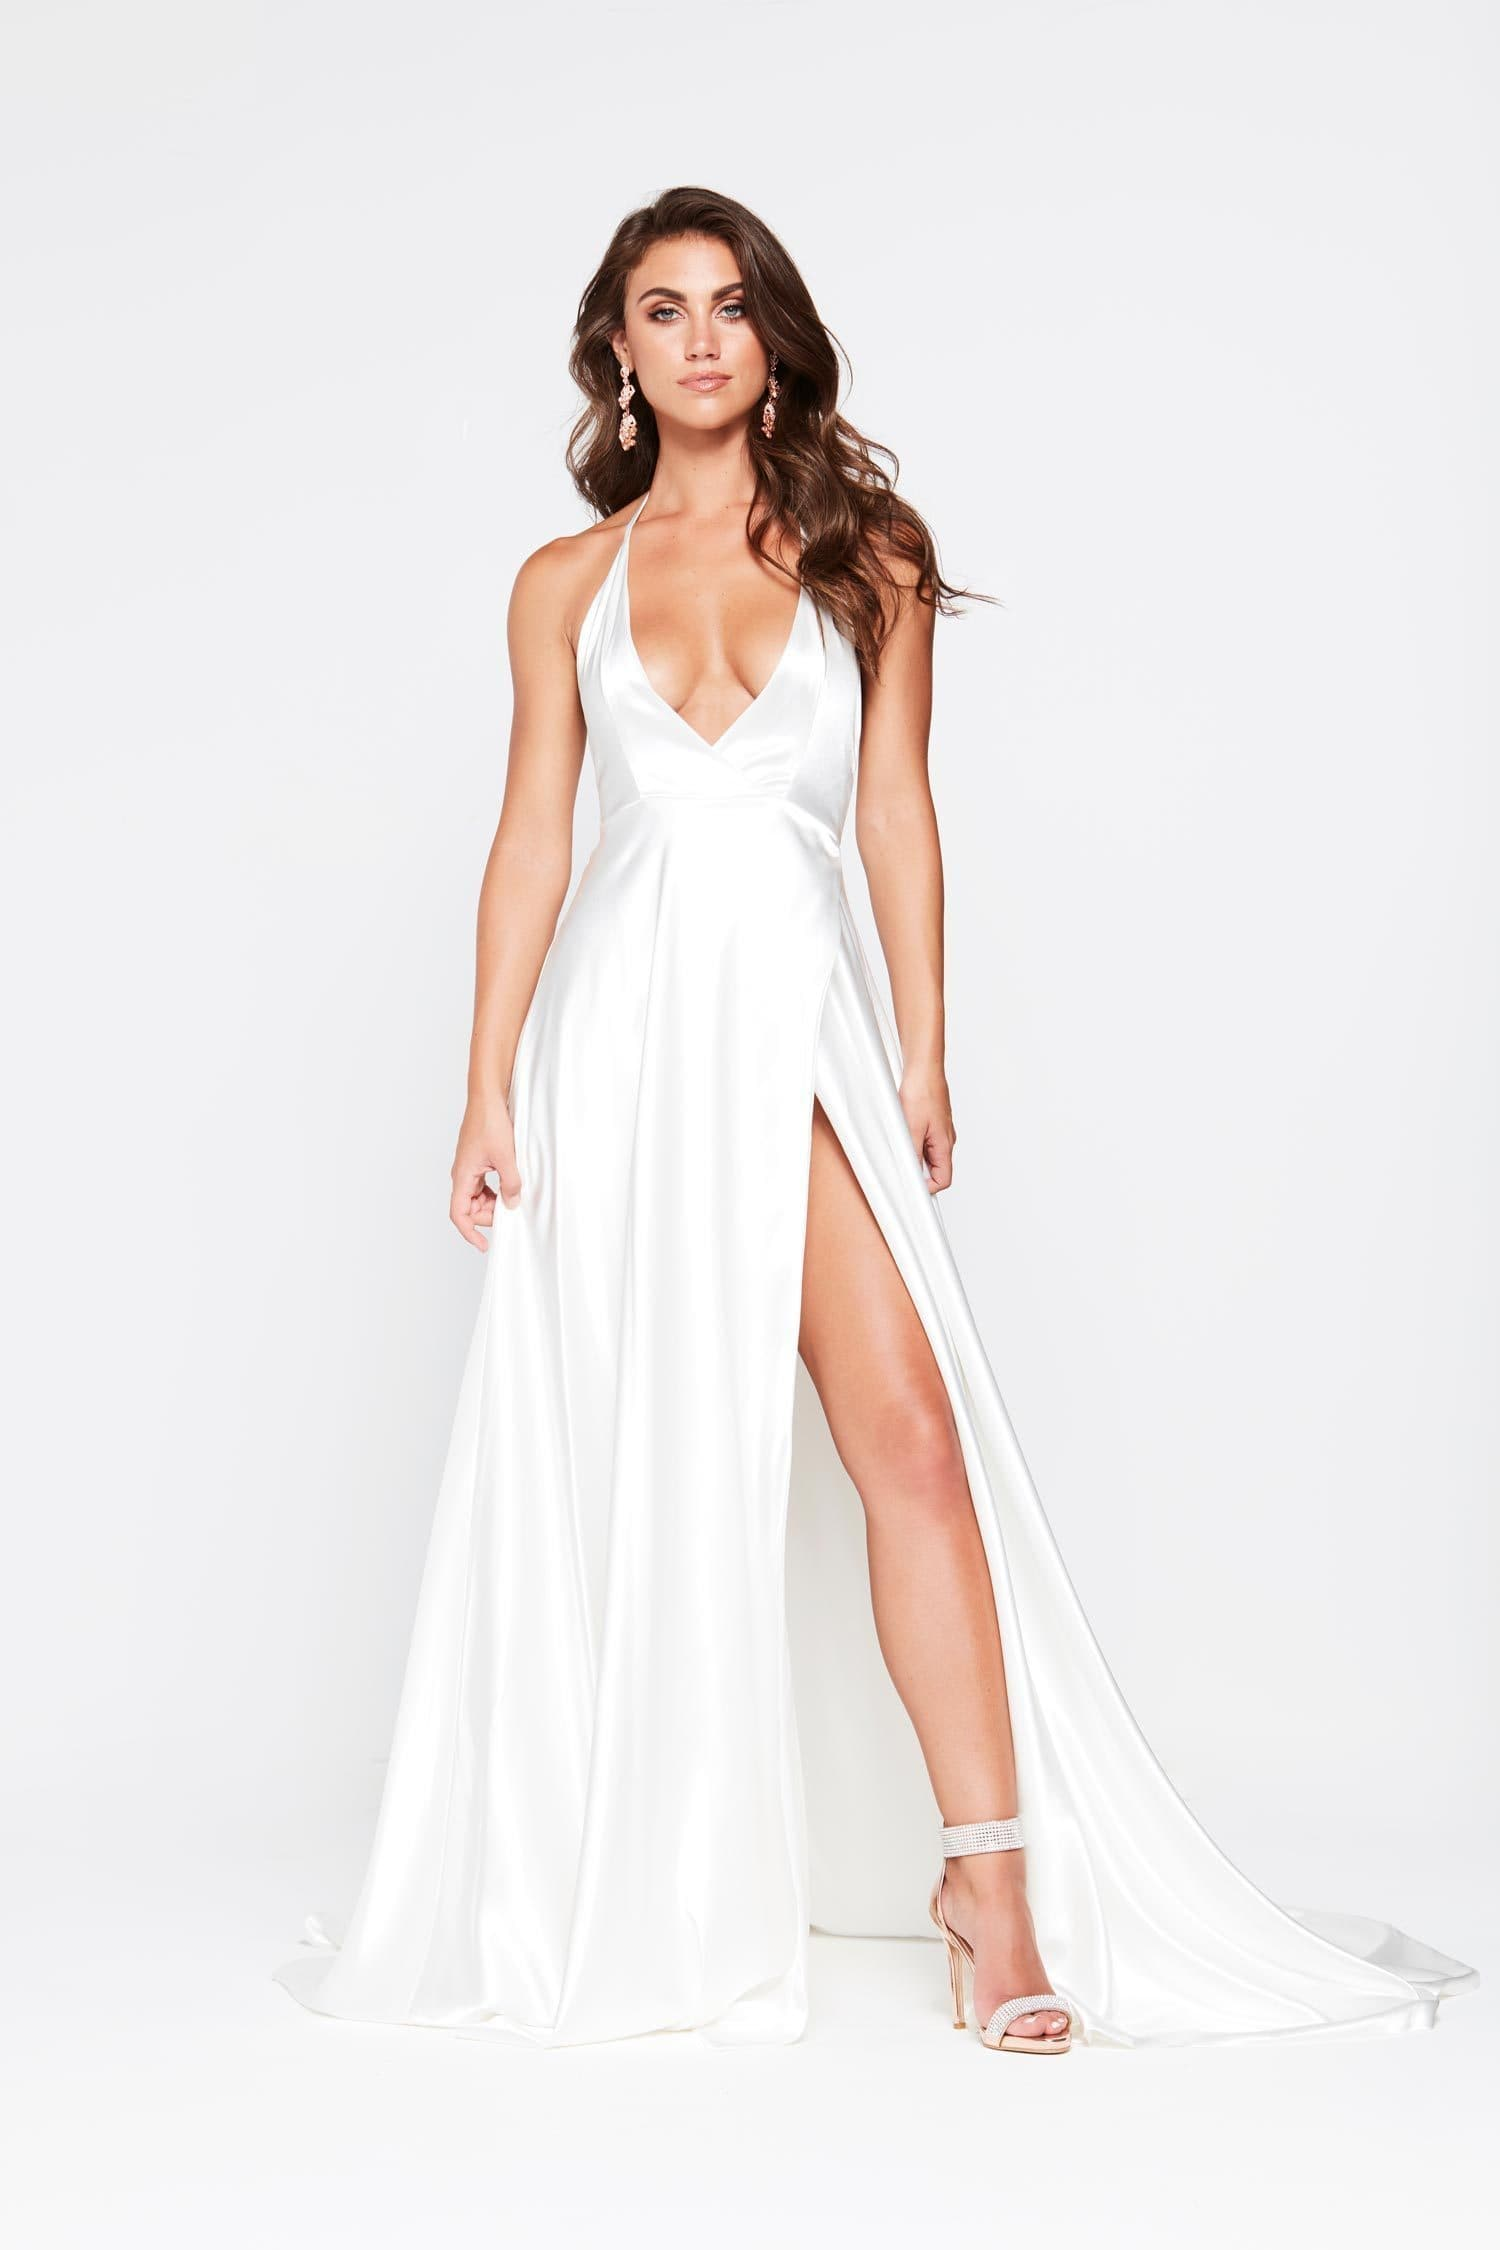 002d1432bb A N Amani - White Satin Dress with Side Slit and Low Back – A N Luxe ...